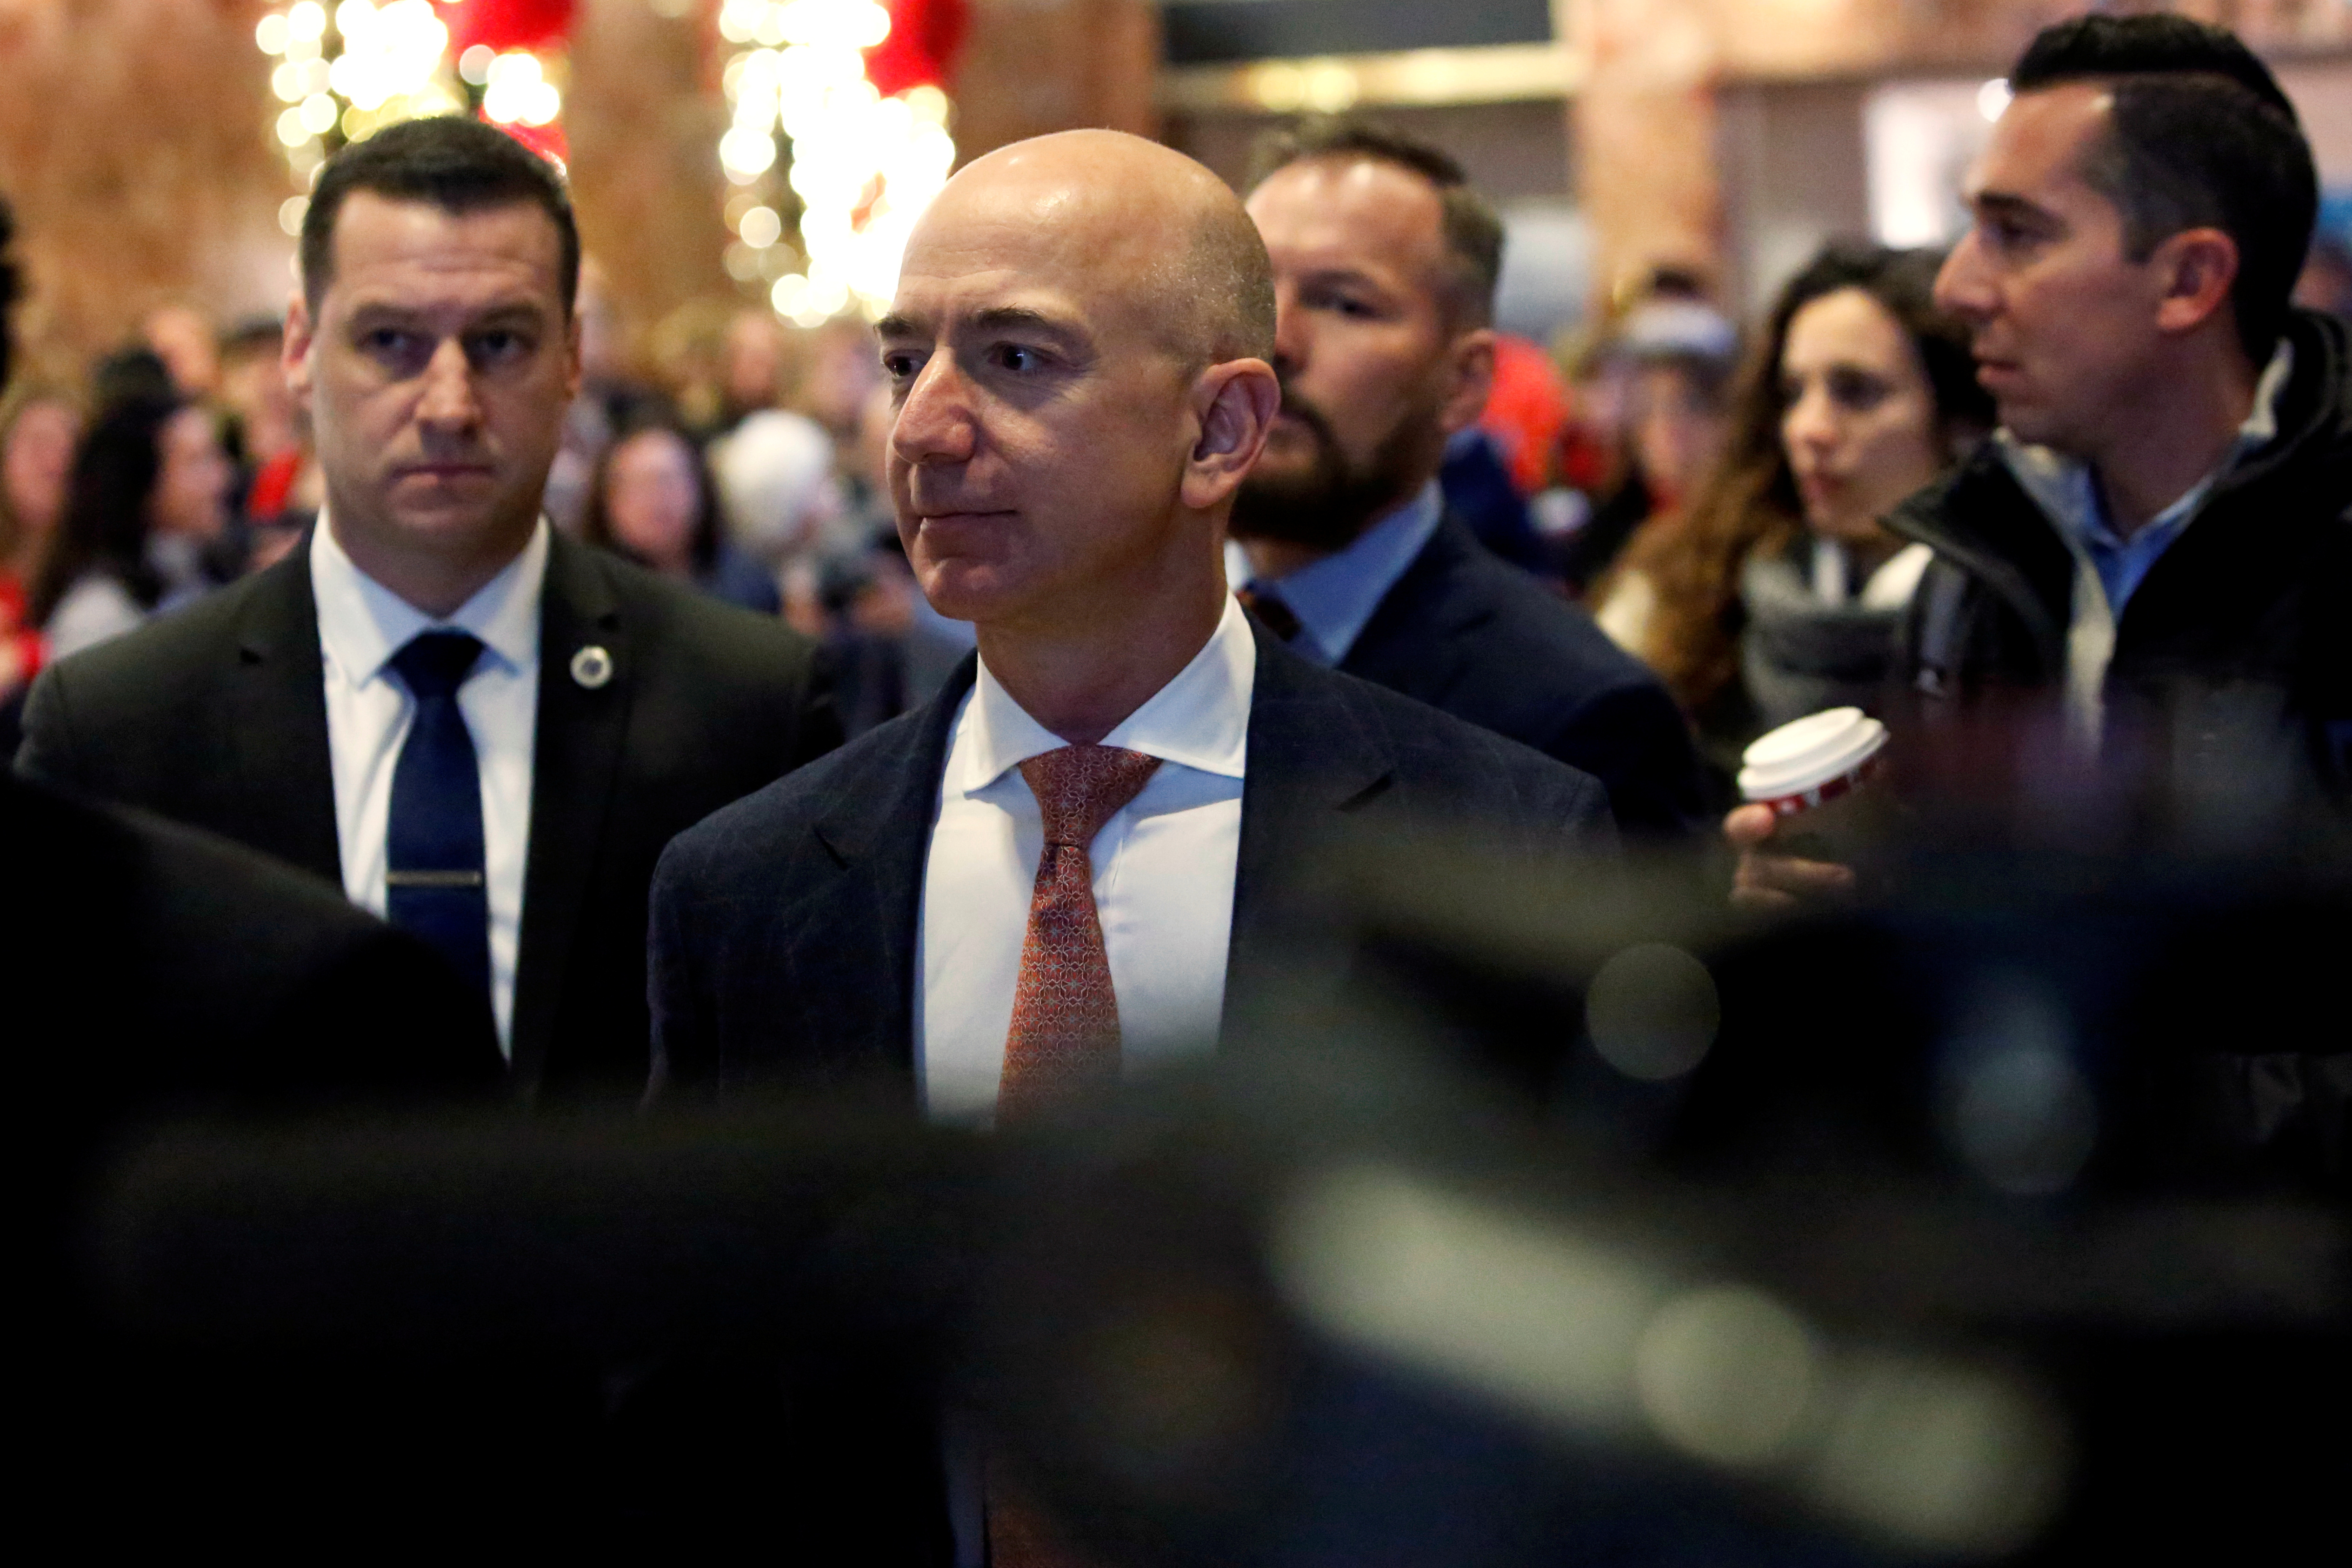 Jeff Bezos, founder, chairman, and chief executive officer of Amazon.com enters Trump Tower ahead of a meeting of technology leaders with President-elect Donald Trump in Manhattan, New York City, U.S., December 14, 2016. REUTERS/Andrew Kelly - RTX2V2Y0